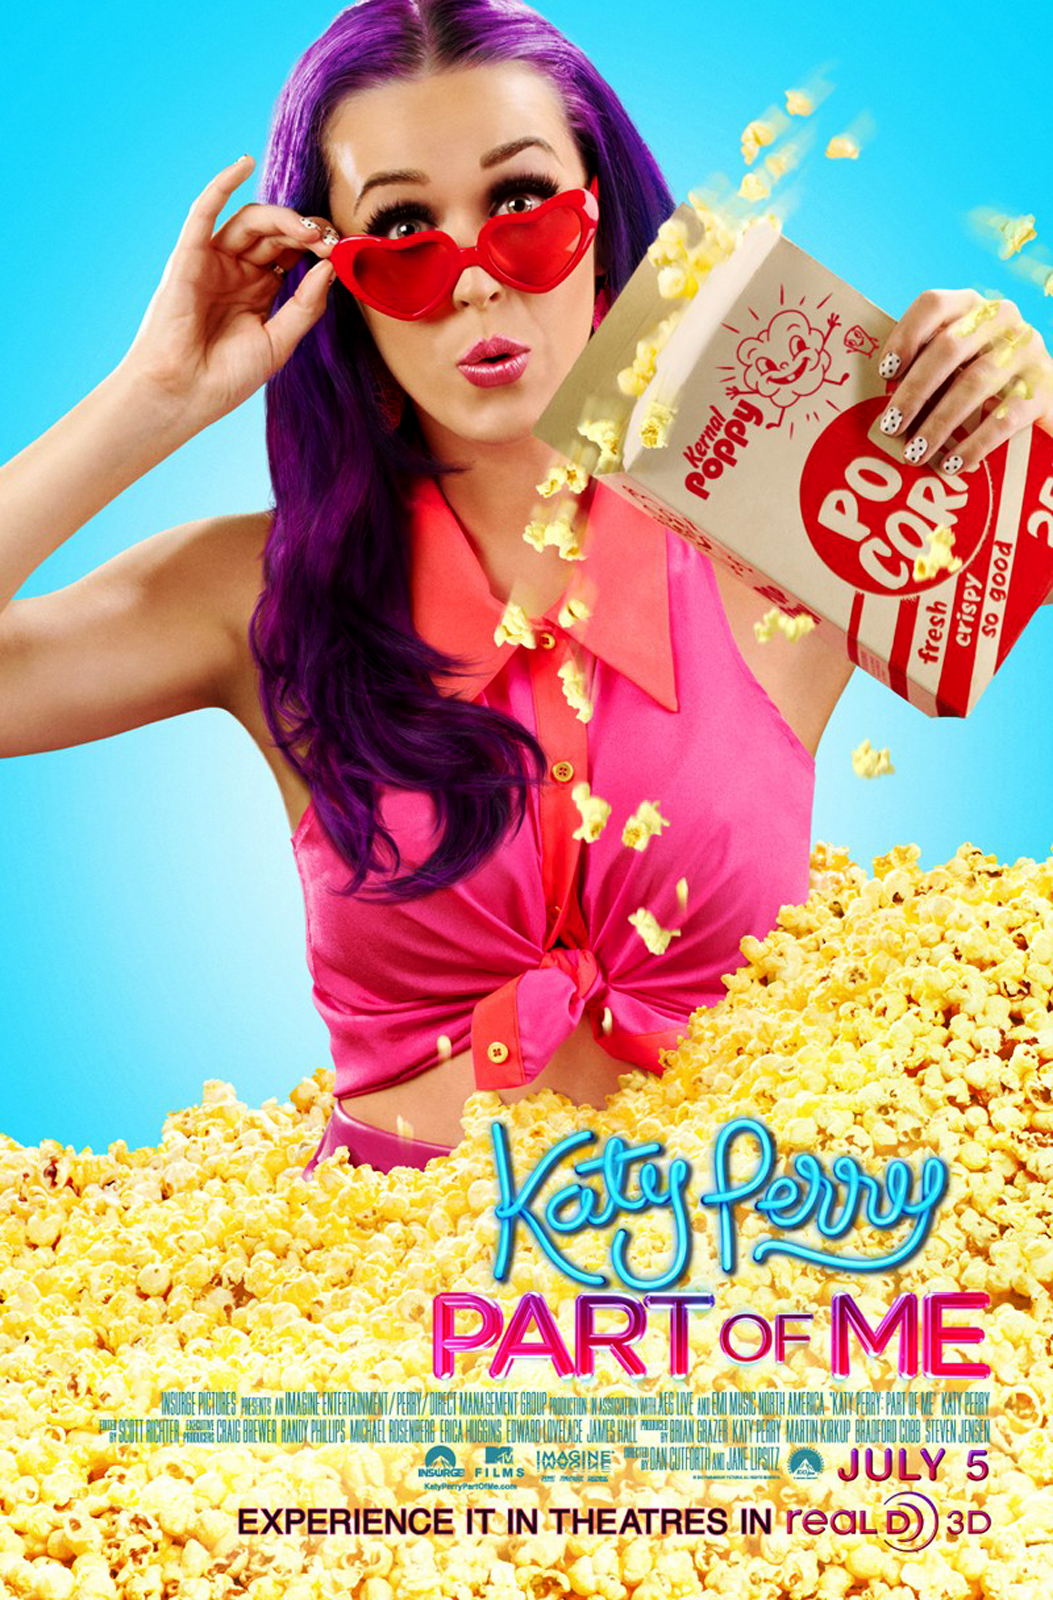 http://1.bp.blogspot.com/-0HRSwJi8moQ/UAFd7CpDa2I/AAAAAAAACtQ/OdEt-ZjXBGs/s1600/Katy_Perry_Part_of_Me_3D_Movie_Poster-Vvallpaper.Net.jpg